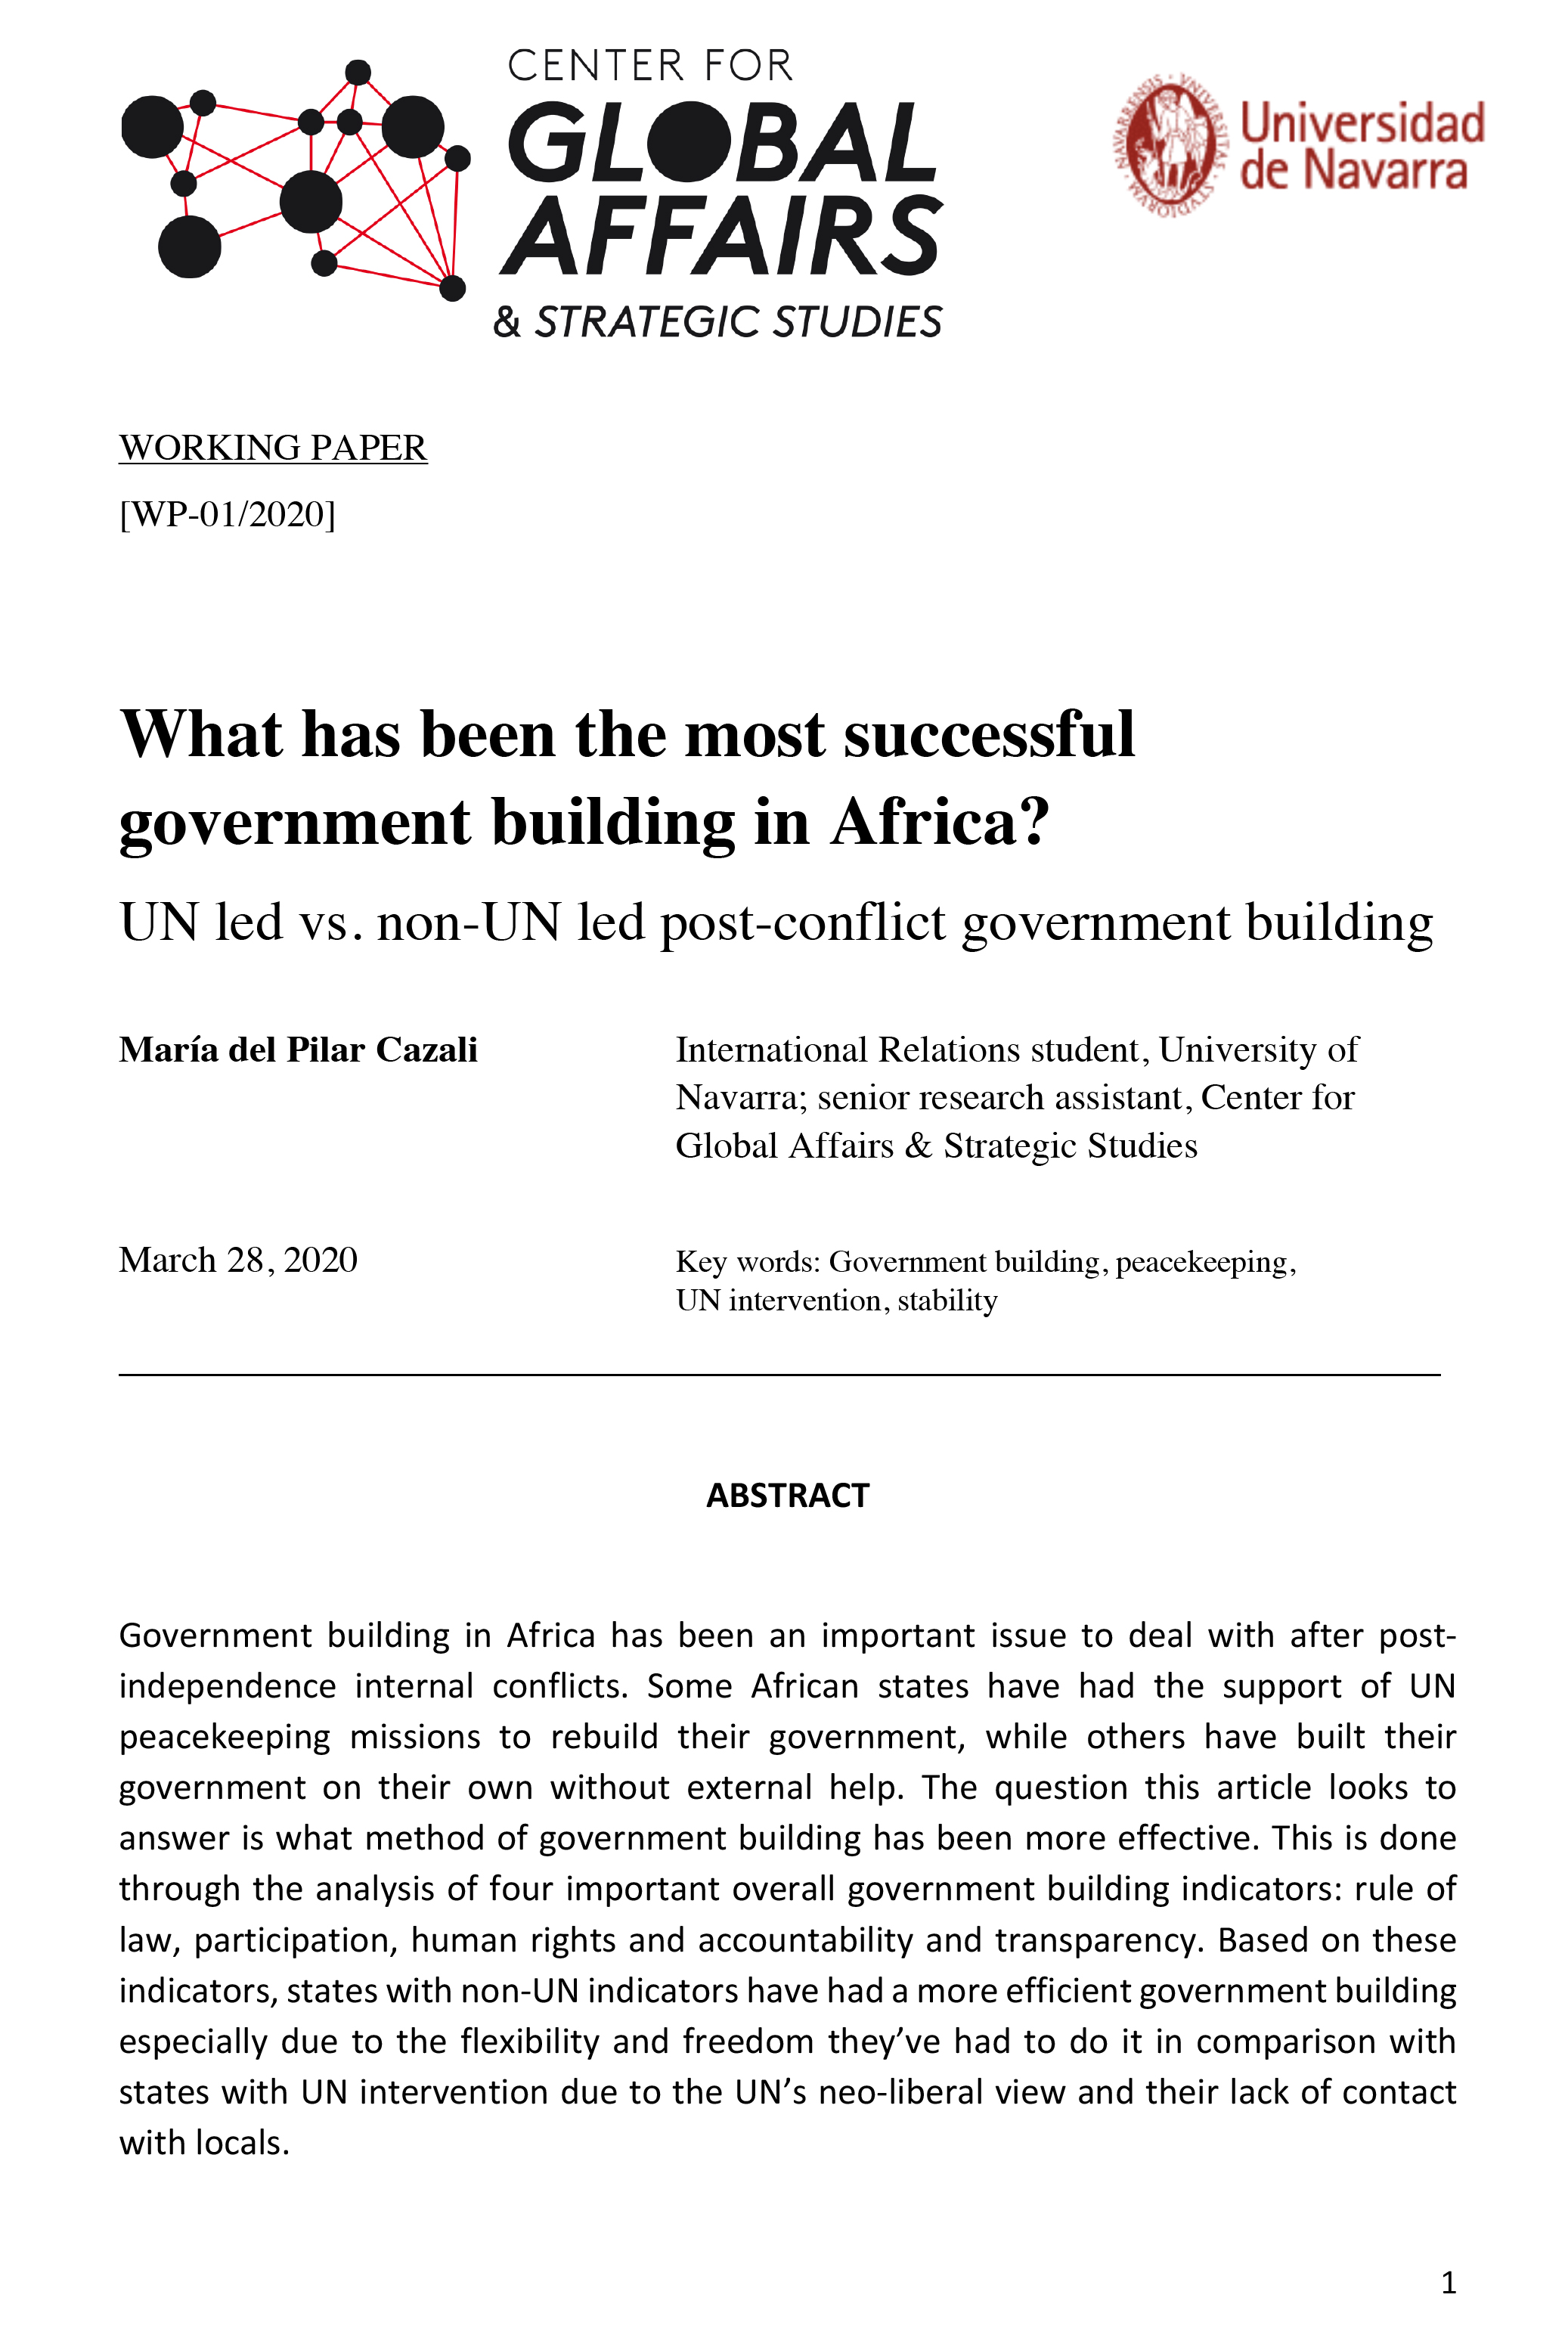 What has been the most successful government building in Africa?